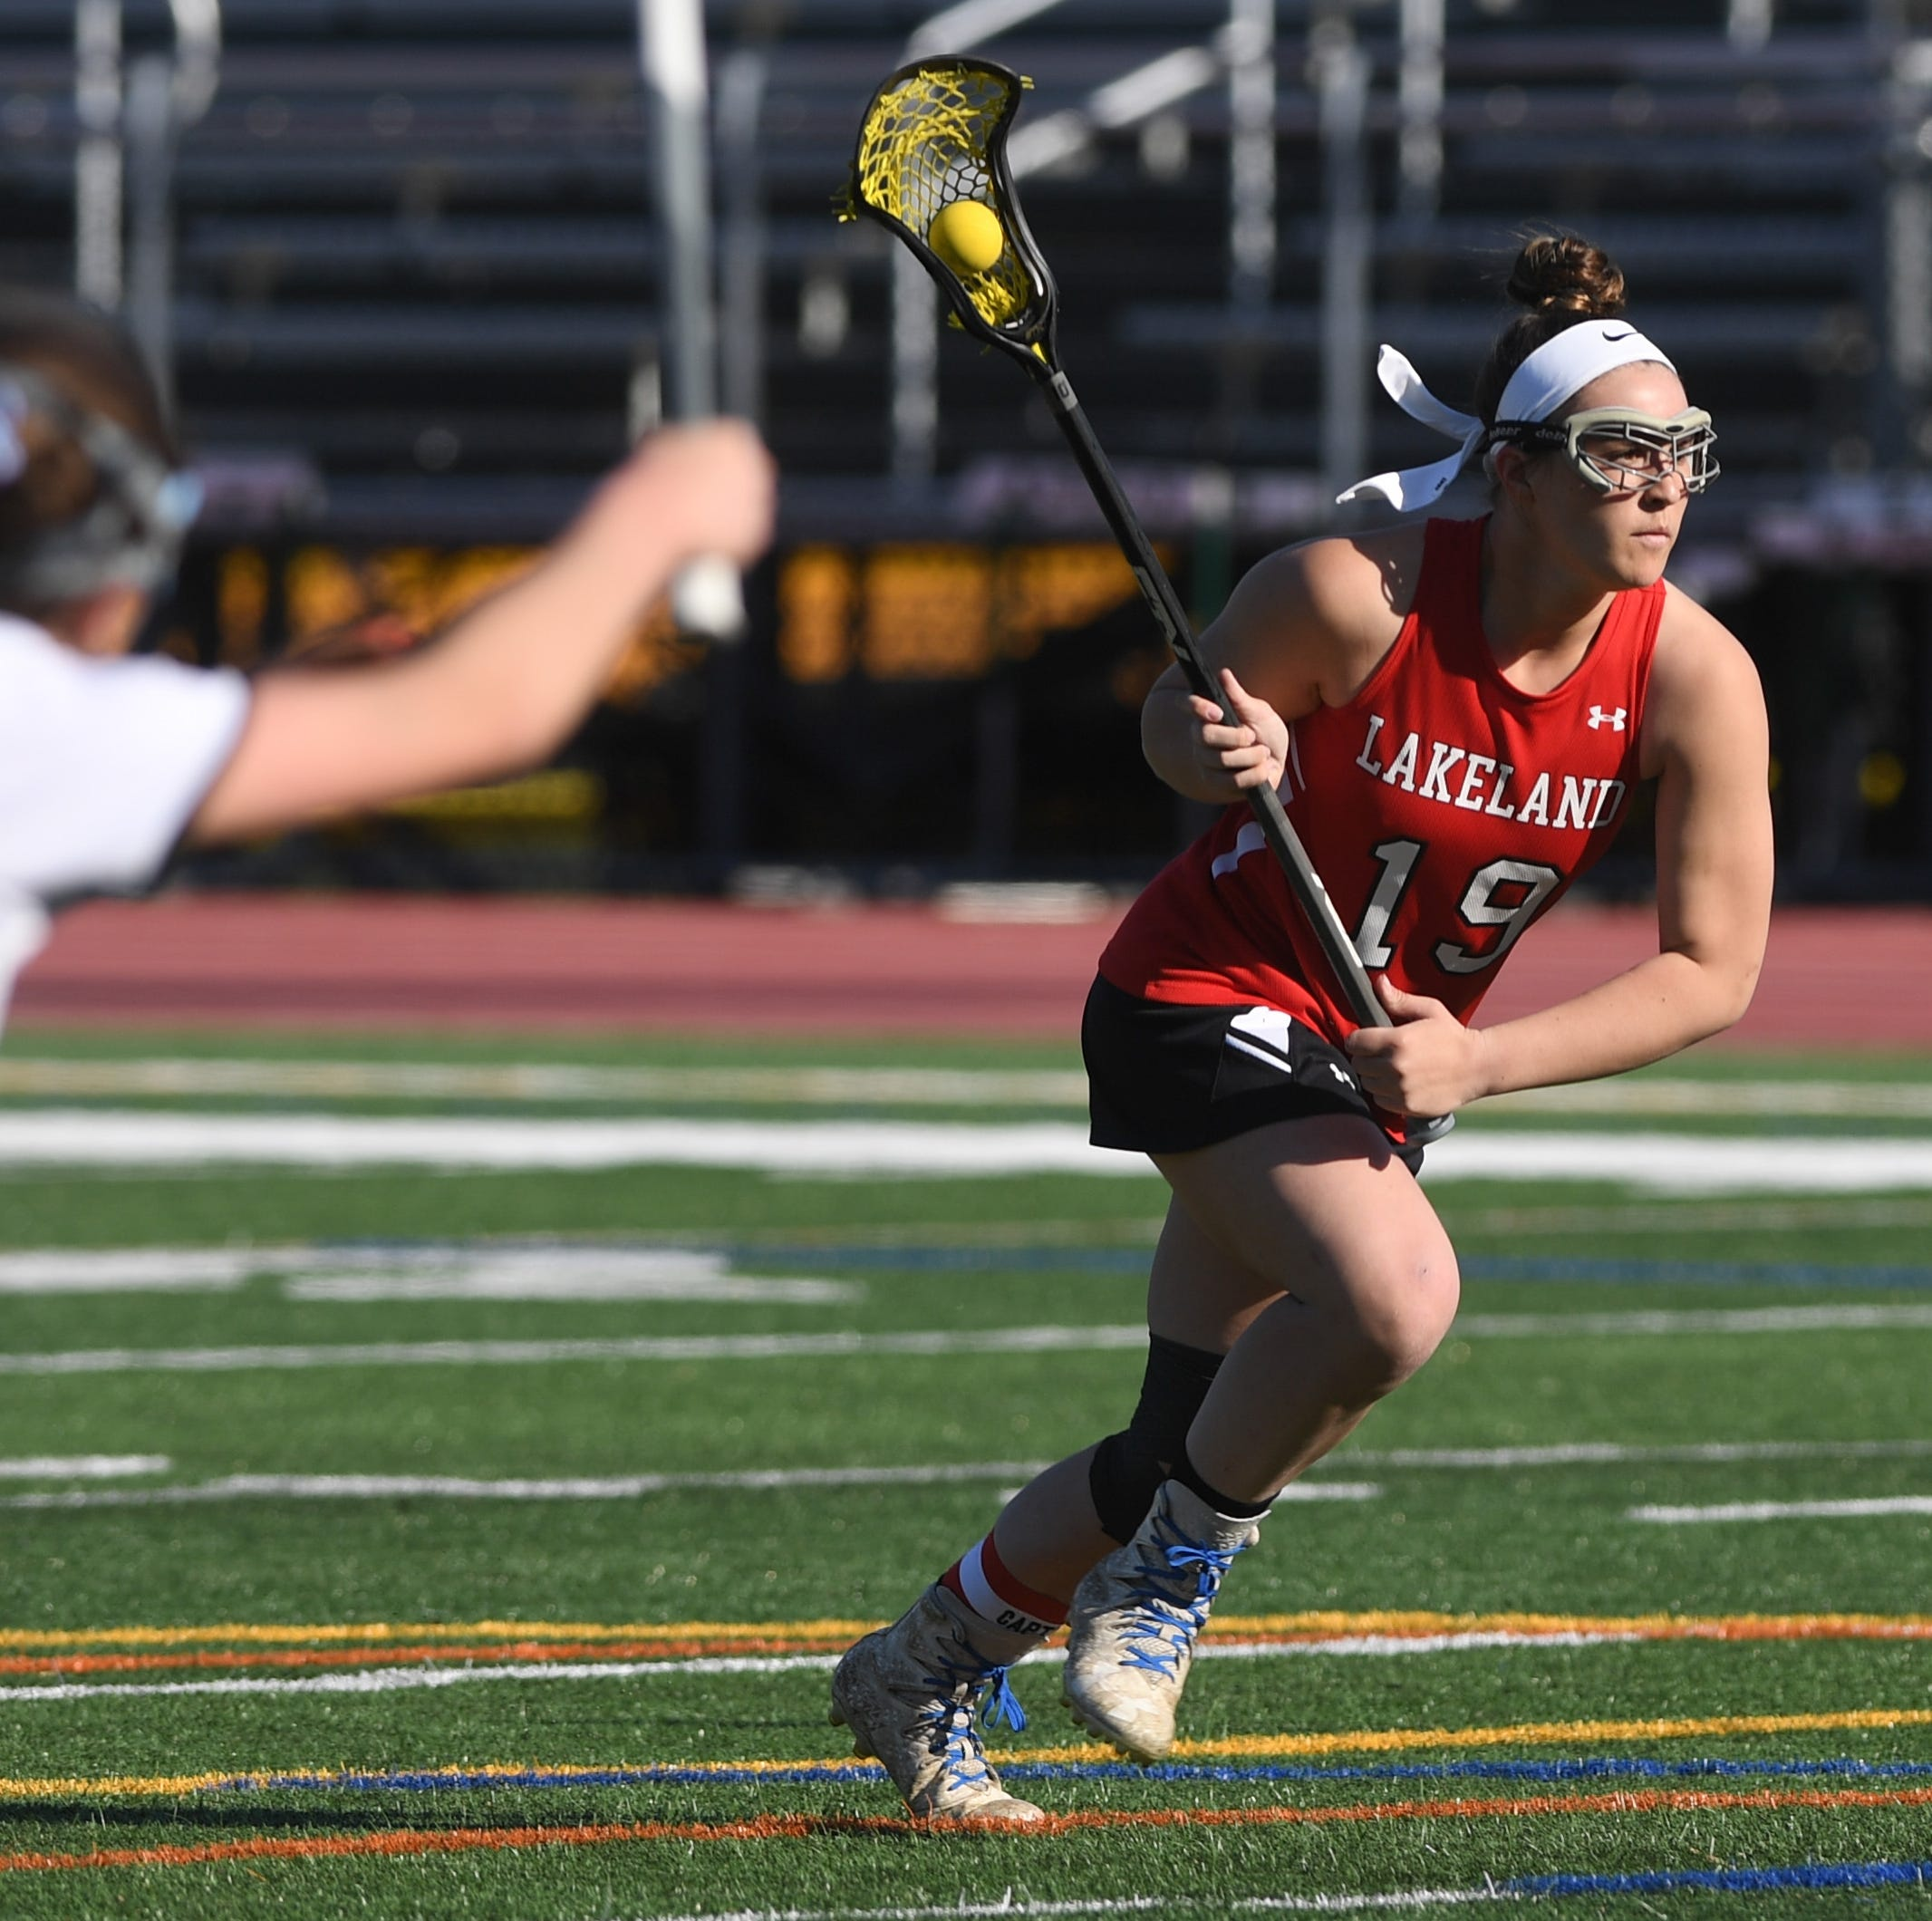 Lakeland's Kendall Lomascola is a lacrosse captain, superstar. And she only has one lung